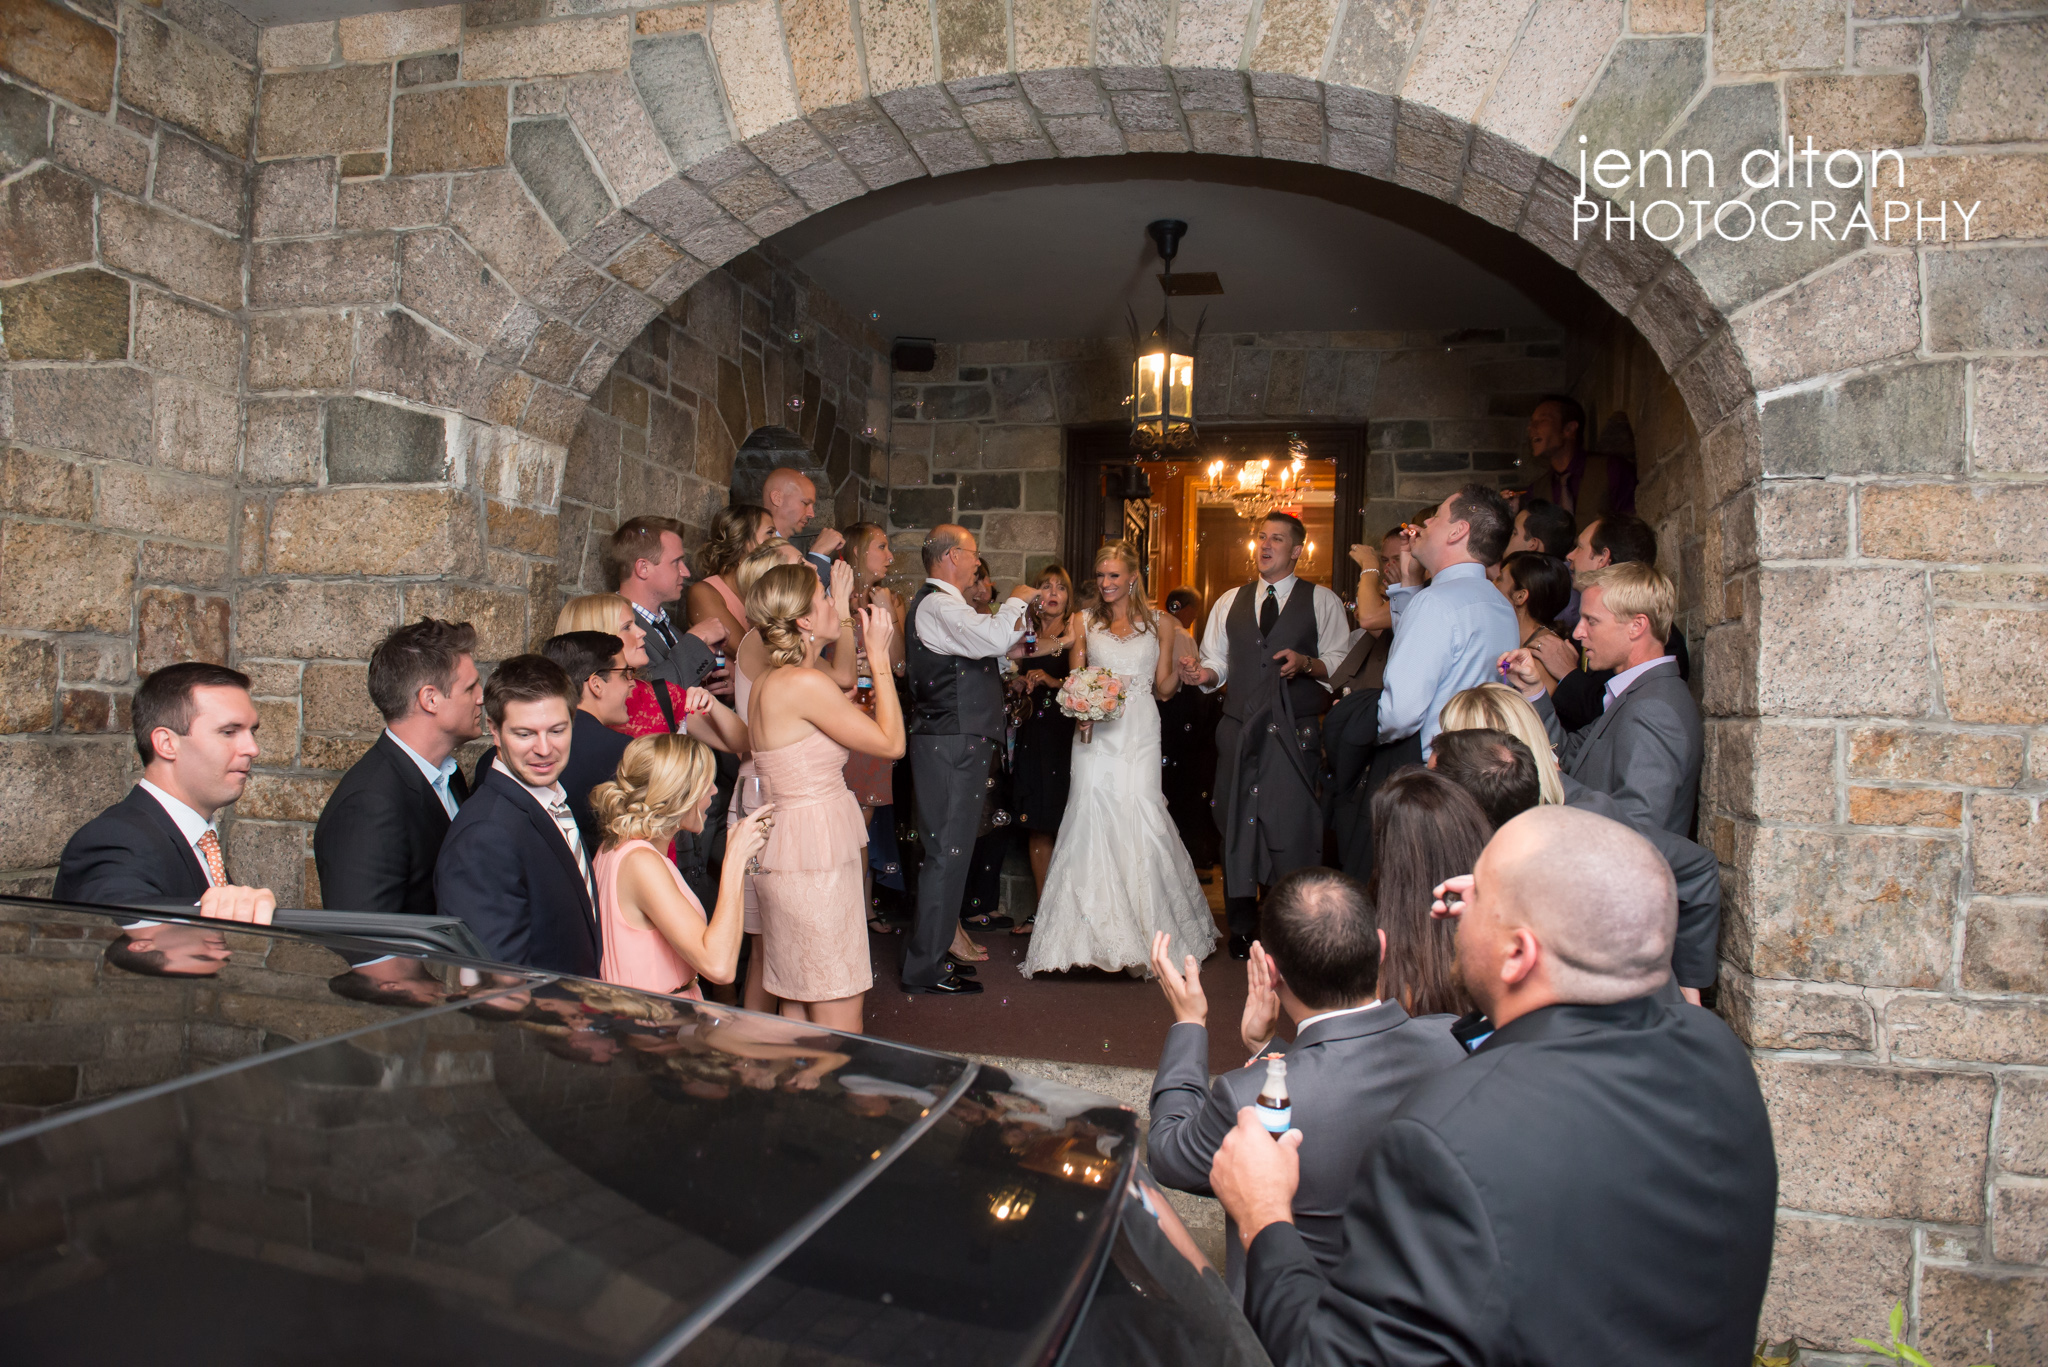 Grand exit with Bubbles for bride and groom, Henderson House